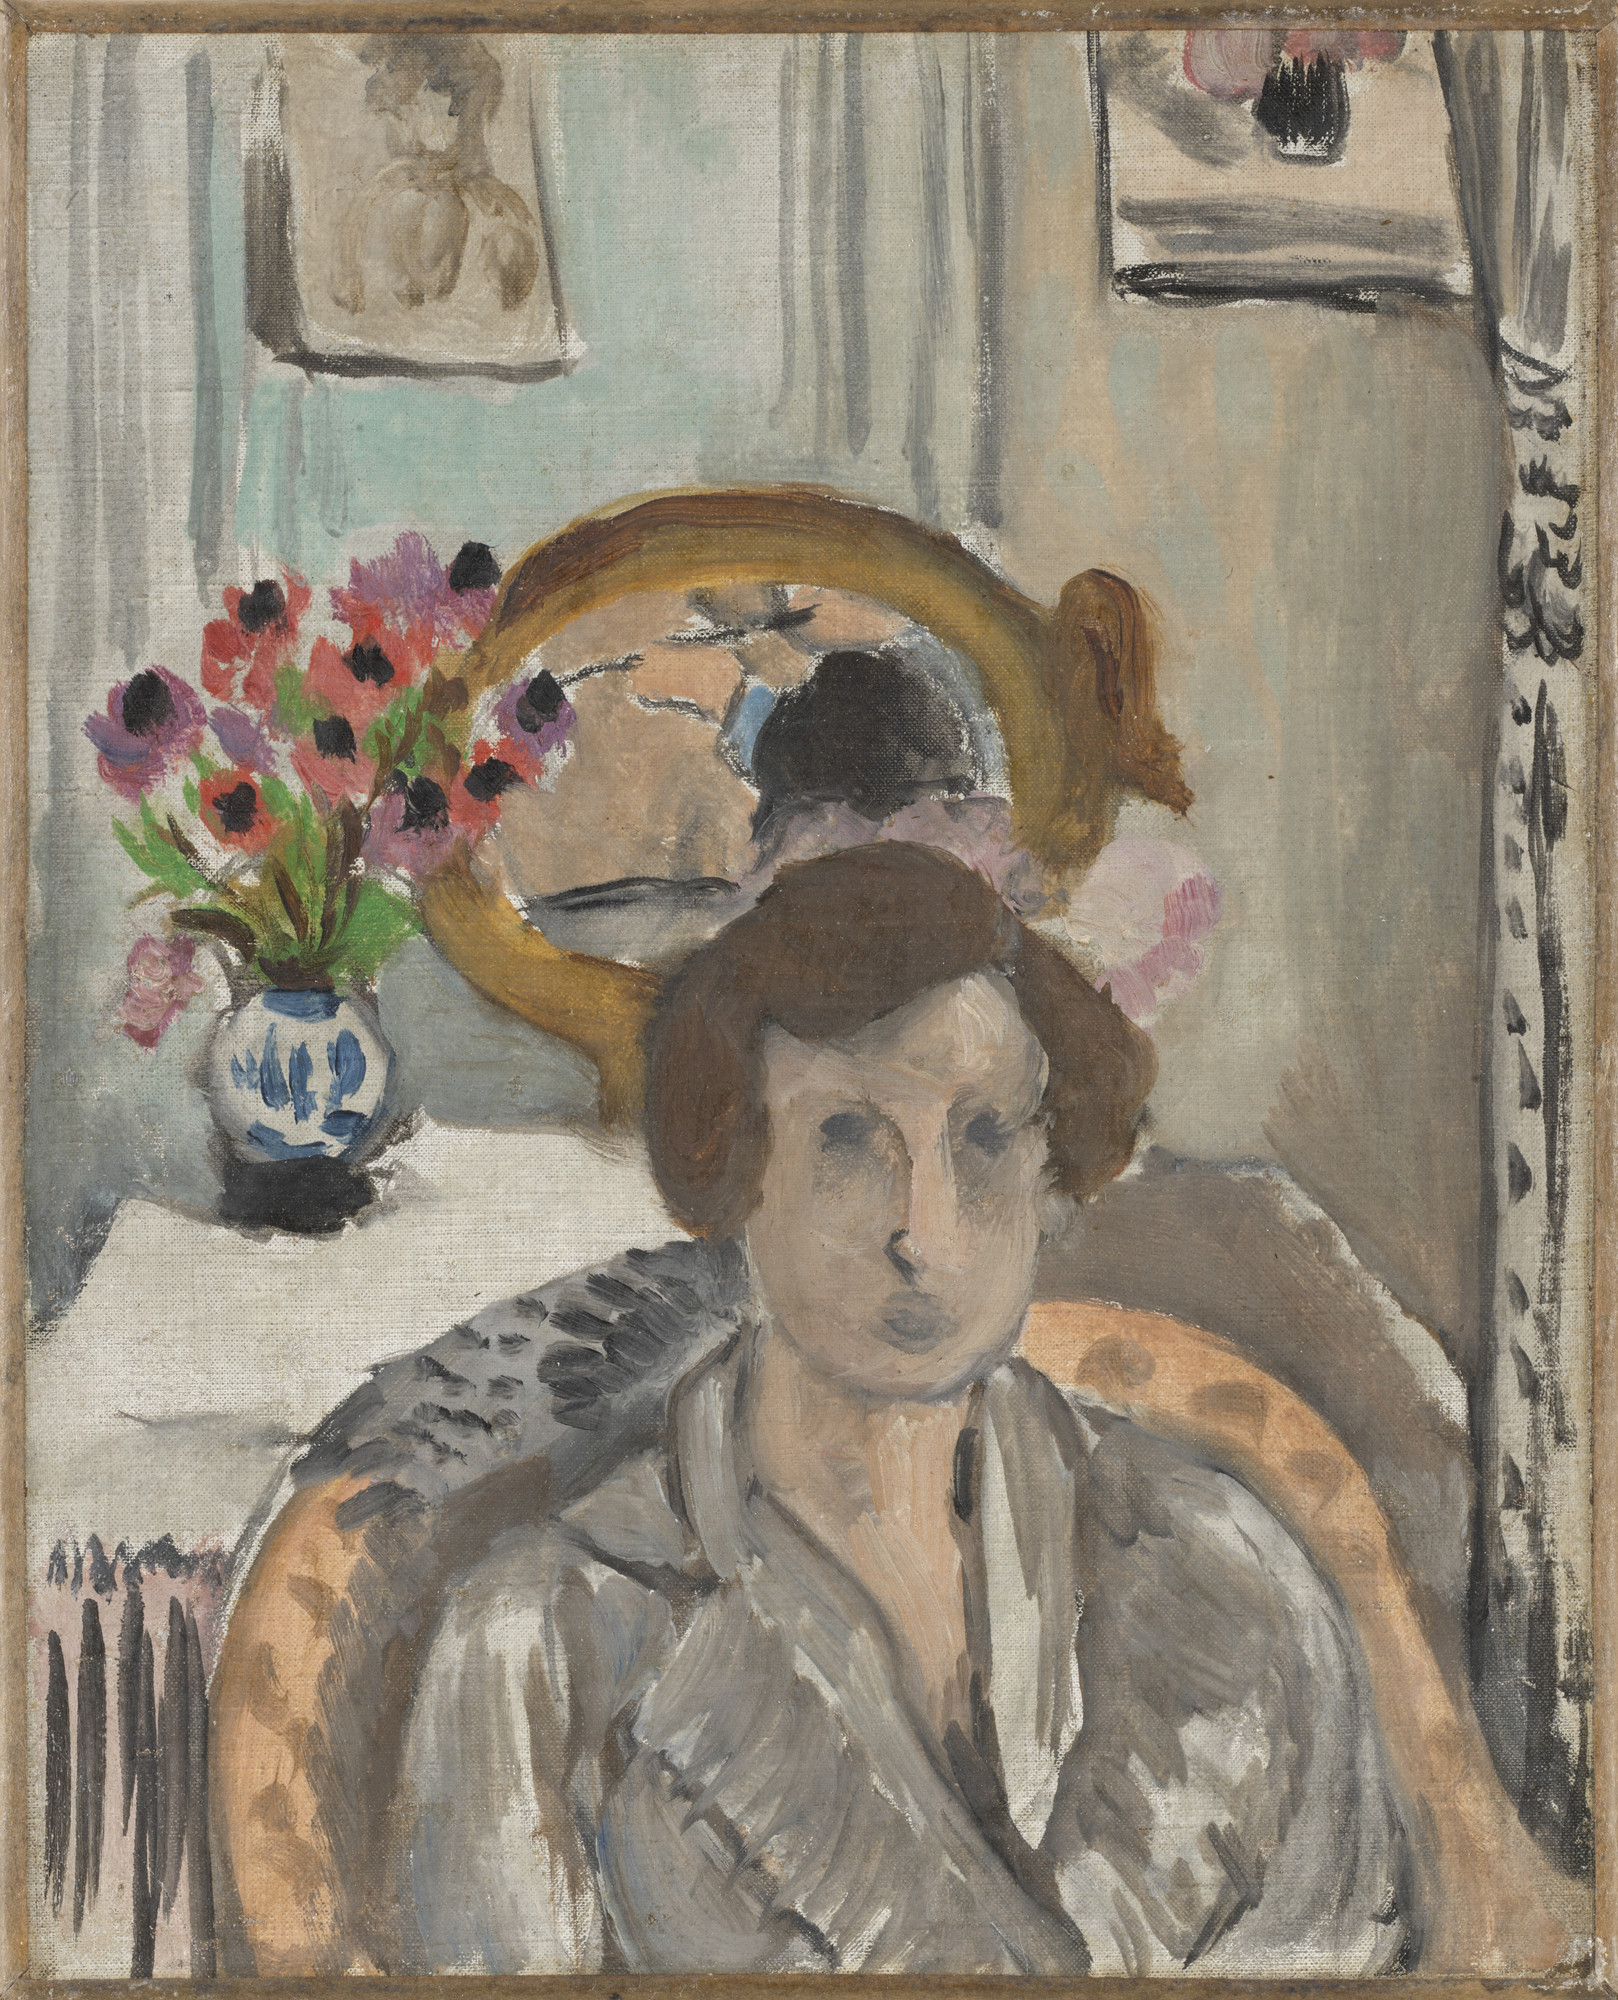 Henri Matisse. Woman with Anemones. c. 1919-20